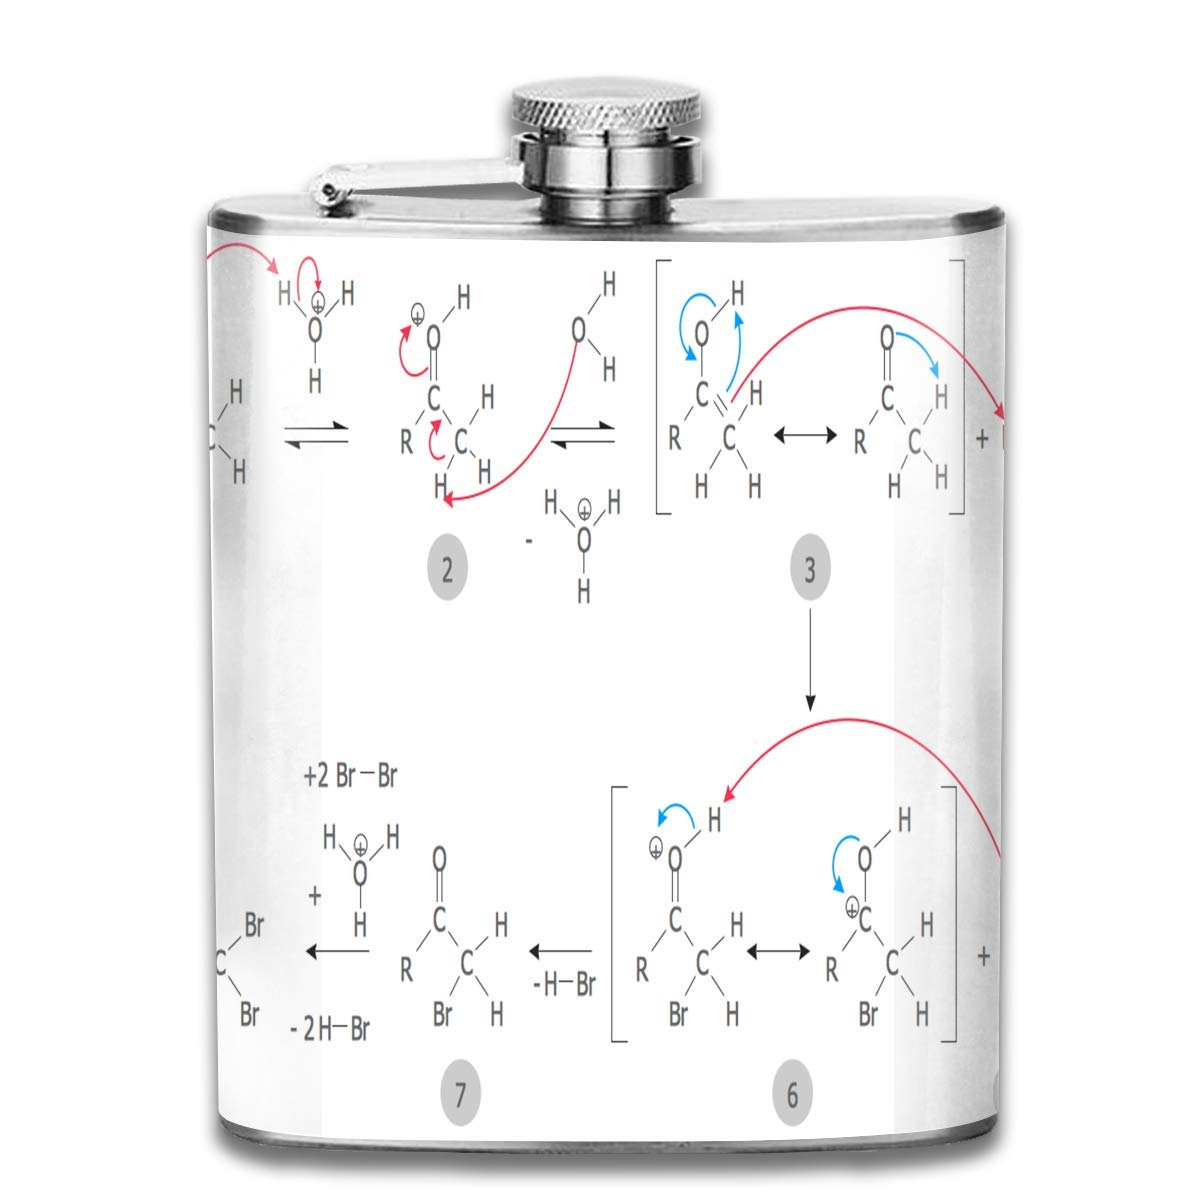 Rghkjlp Stainless Steel Flask Nebula Galaxy Whiskey Flask Vodka Portable Pocket Bottle Camping Wine Bottle 7oz Suitable for Men and Women Multicolor9